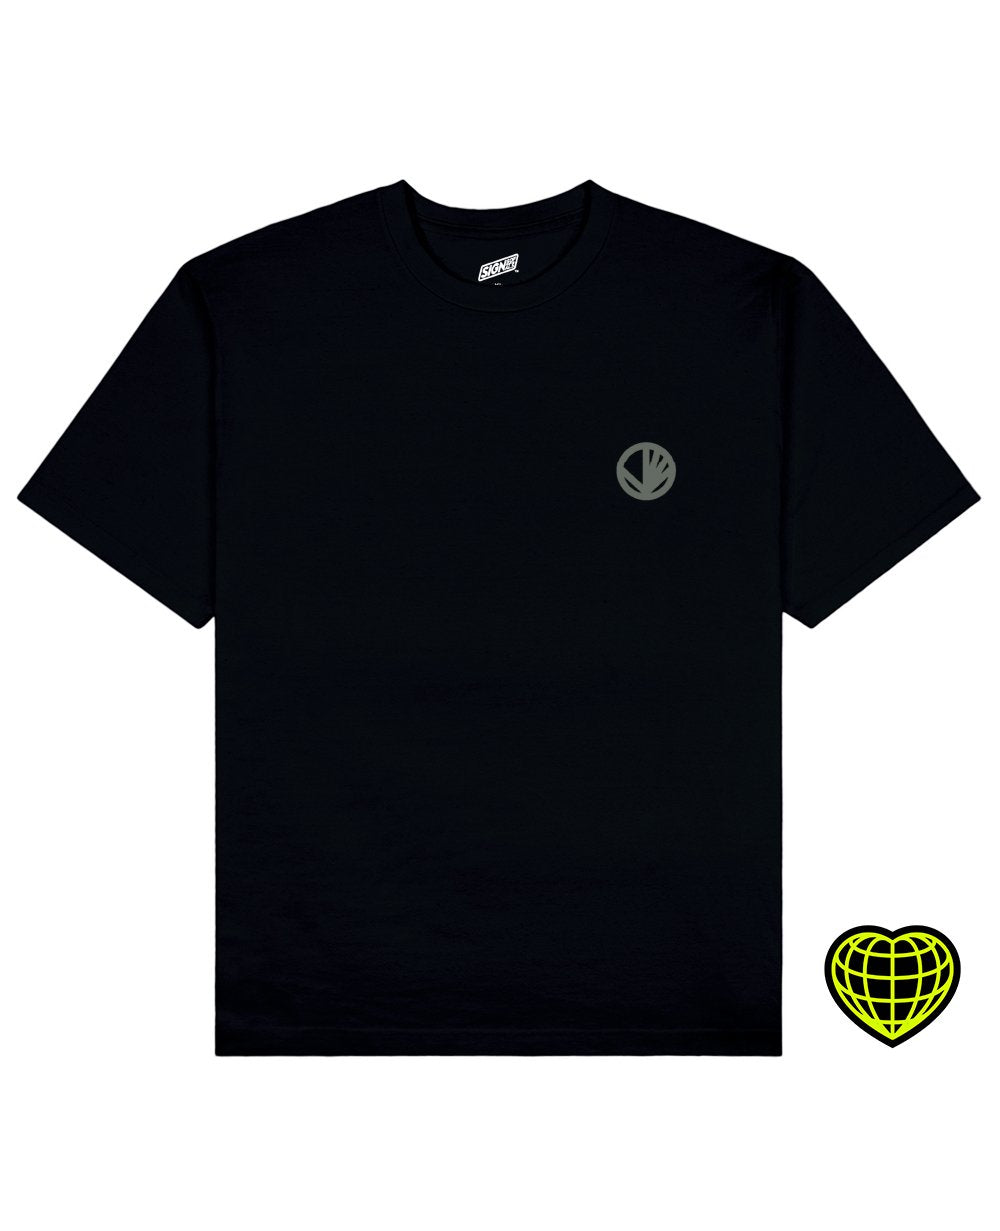 Circle with beams Print T-shirt in Black - T-shirts - Signs of Signals - BRANMA